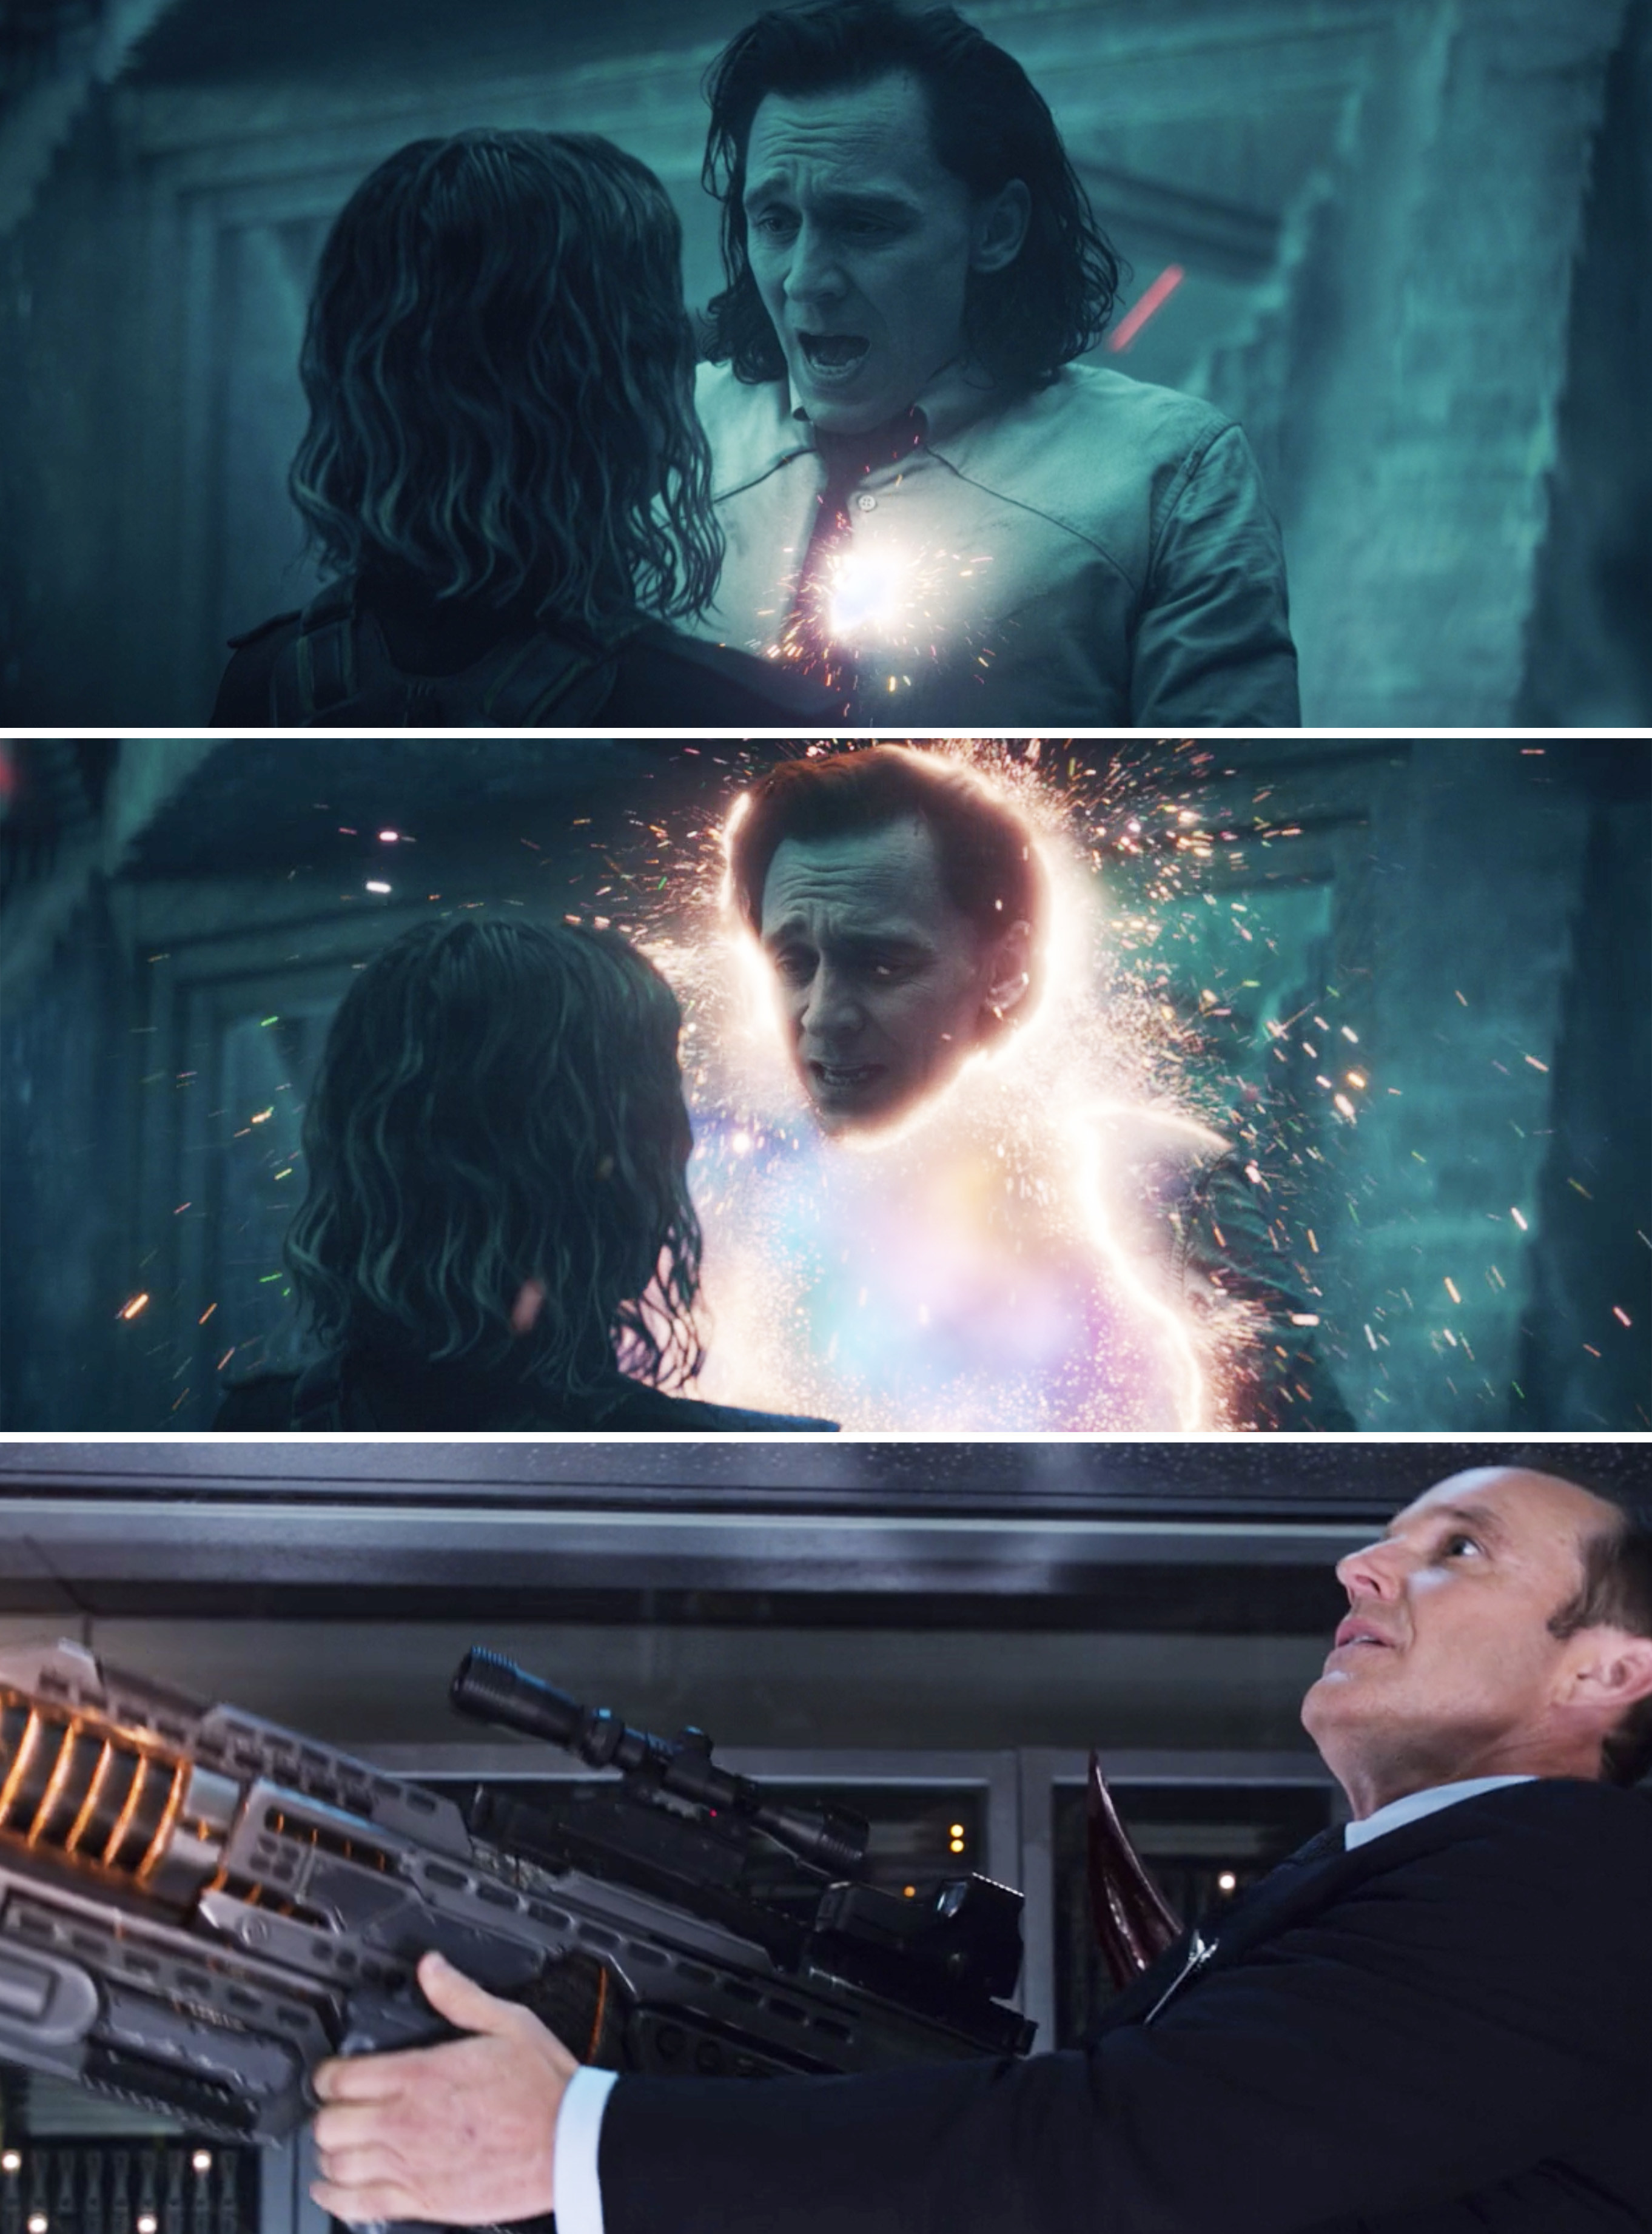 Loki disappearing after being stabbed vs. Coulson being stabbed in The Avengers